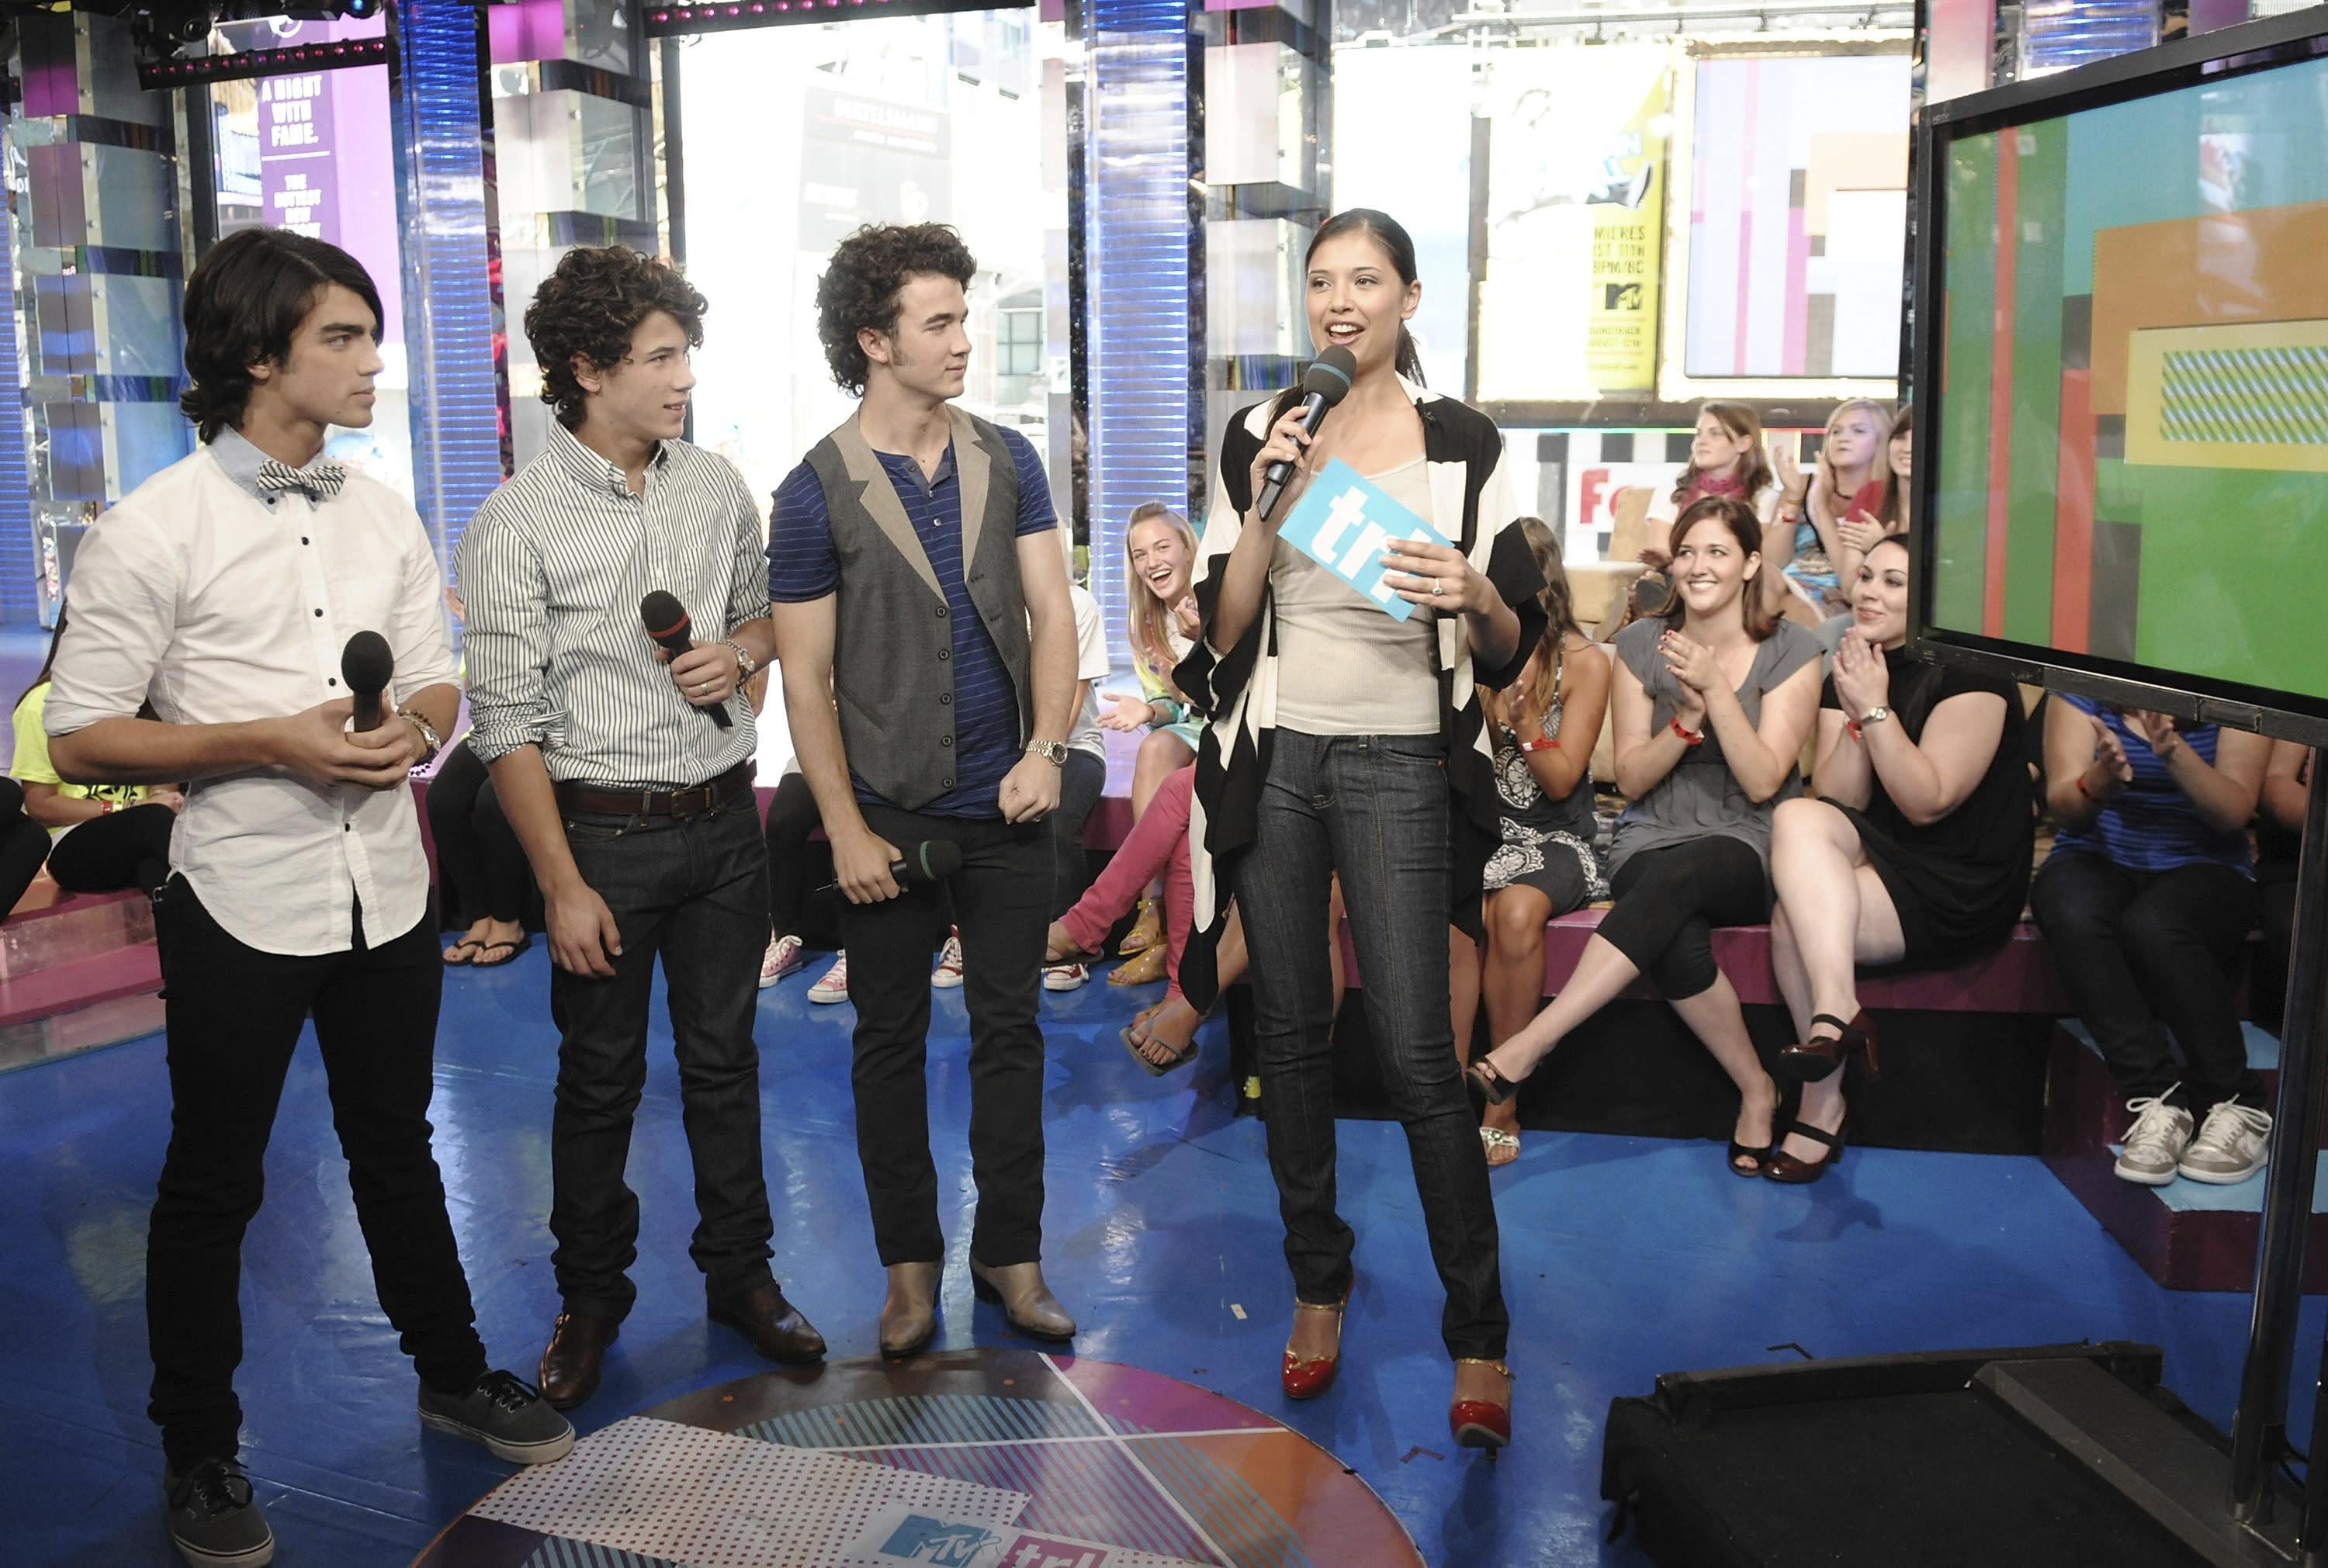 """FILE - The Jonas Brothers, from left, Joe, Nick and Kevin, chat with VJ Lyndsey Rodrigues during a co-hosting appearance on MTV's """"Total Request Live"""" on Aug. 11, 2008, in New York. CBS News is rebuilding MTV's old studio as its headquarters for election night. The network is installing giant touchscreens and """"augmented reality"""" displays for the big political night and says it will provide extra roominess to put on a television show in the COVID-19 era. (AP Photo/Evan Agostini, File)"""